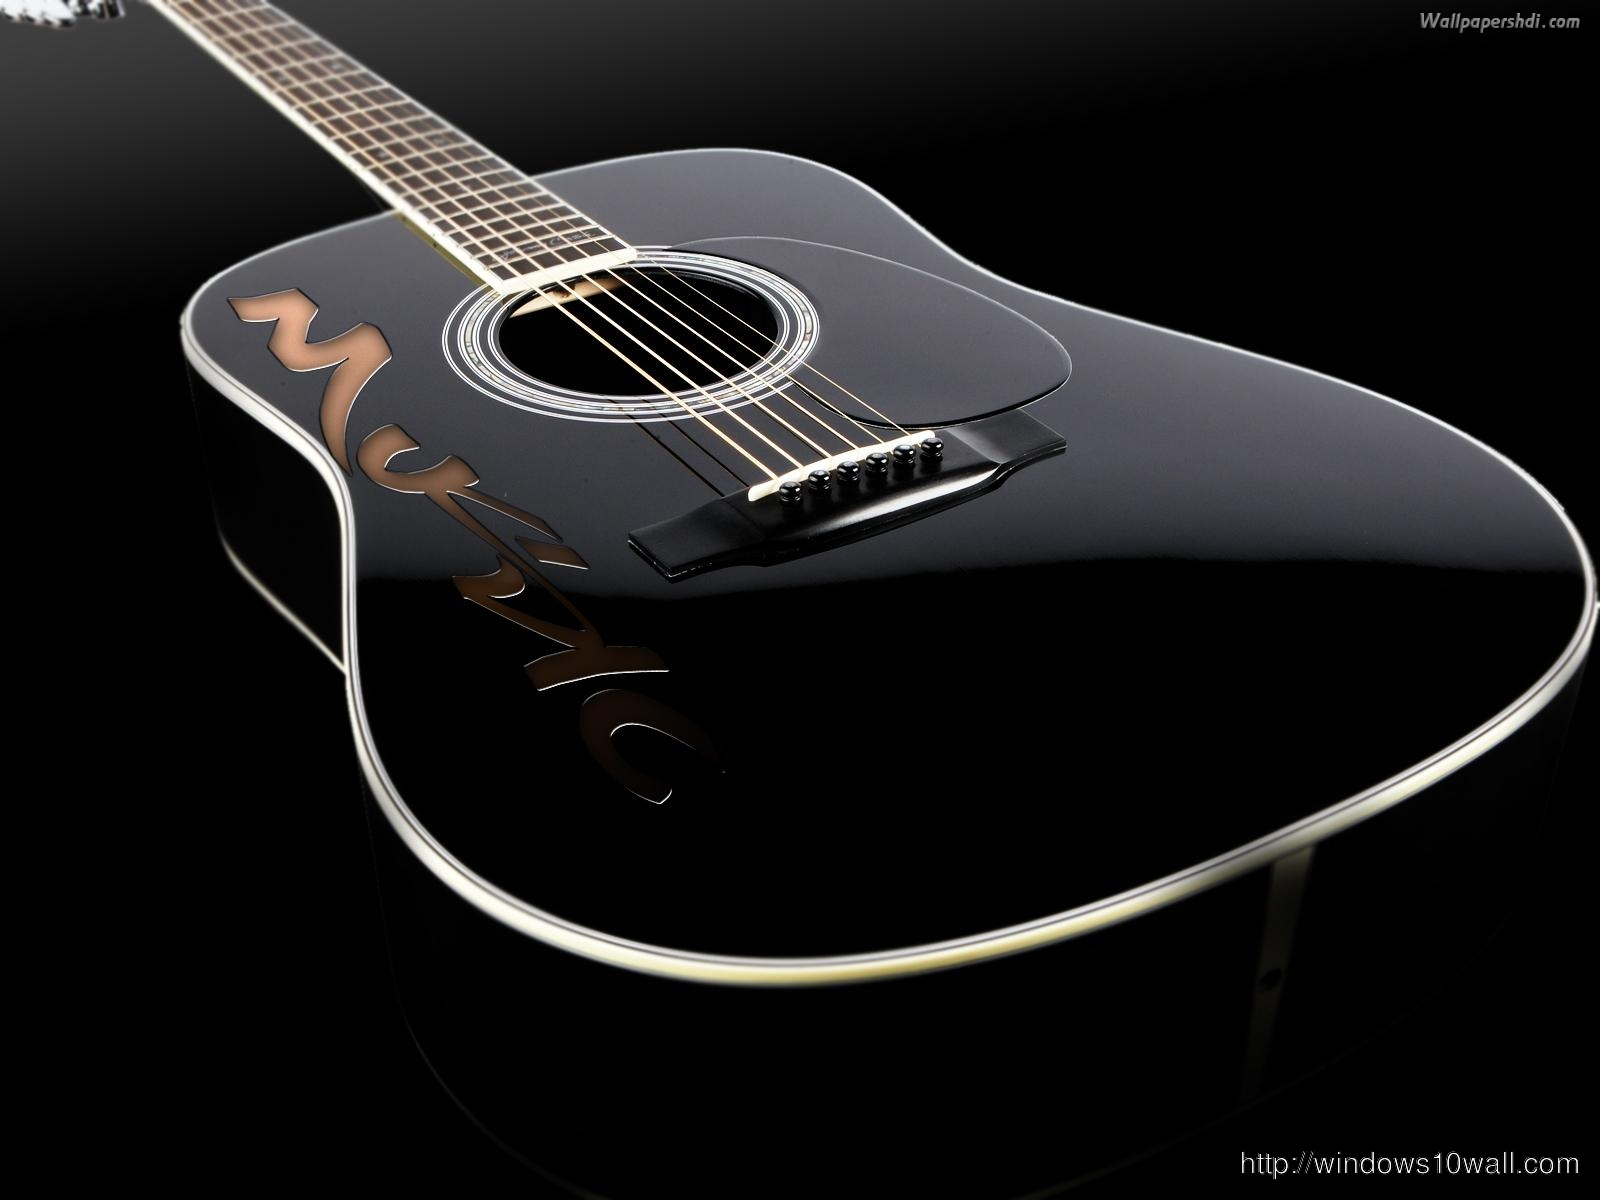 Guitar Wallpaper Black Background Pic Windows 10 Wallpapers